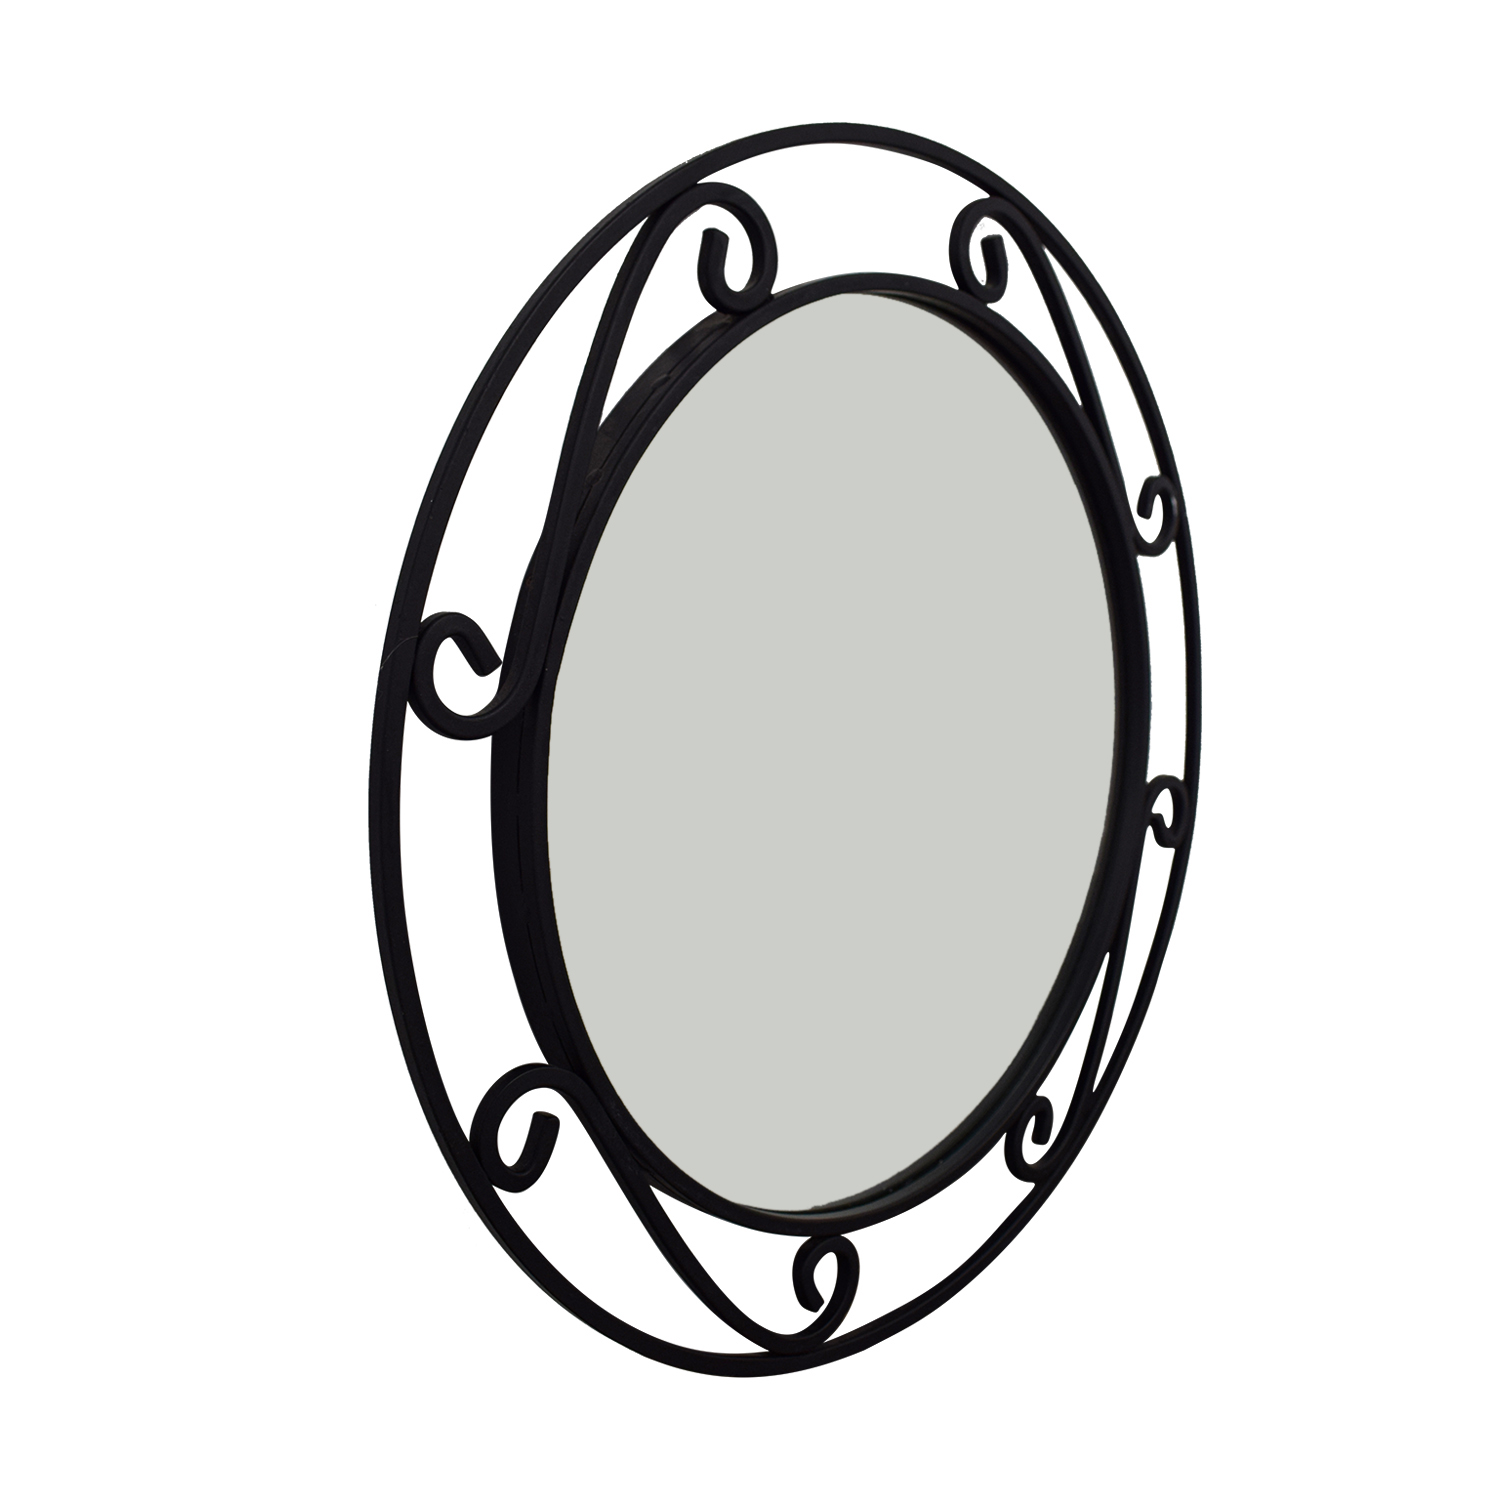 Wrought Iron Black Round Mirror used